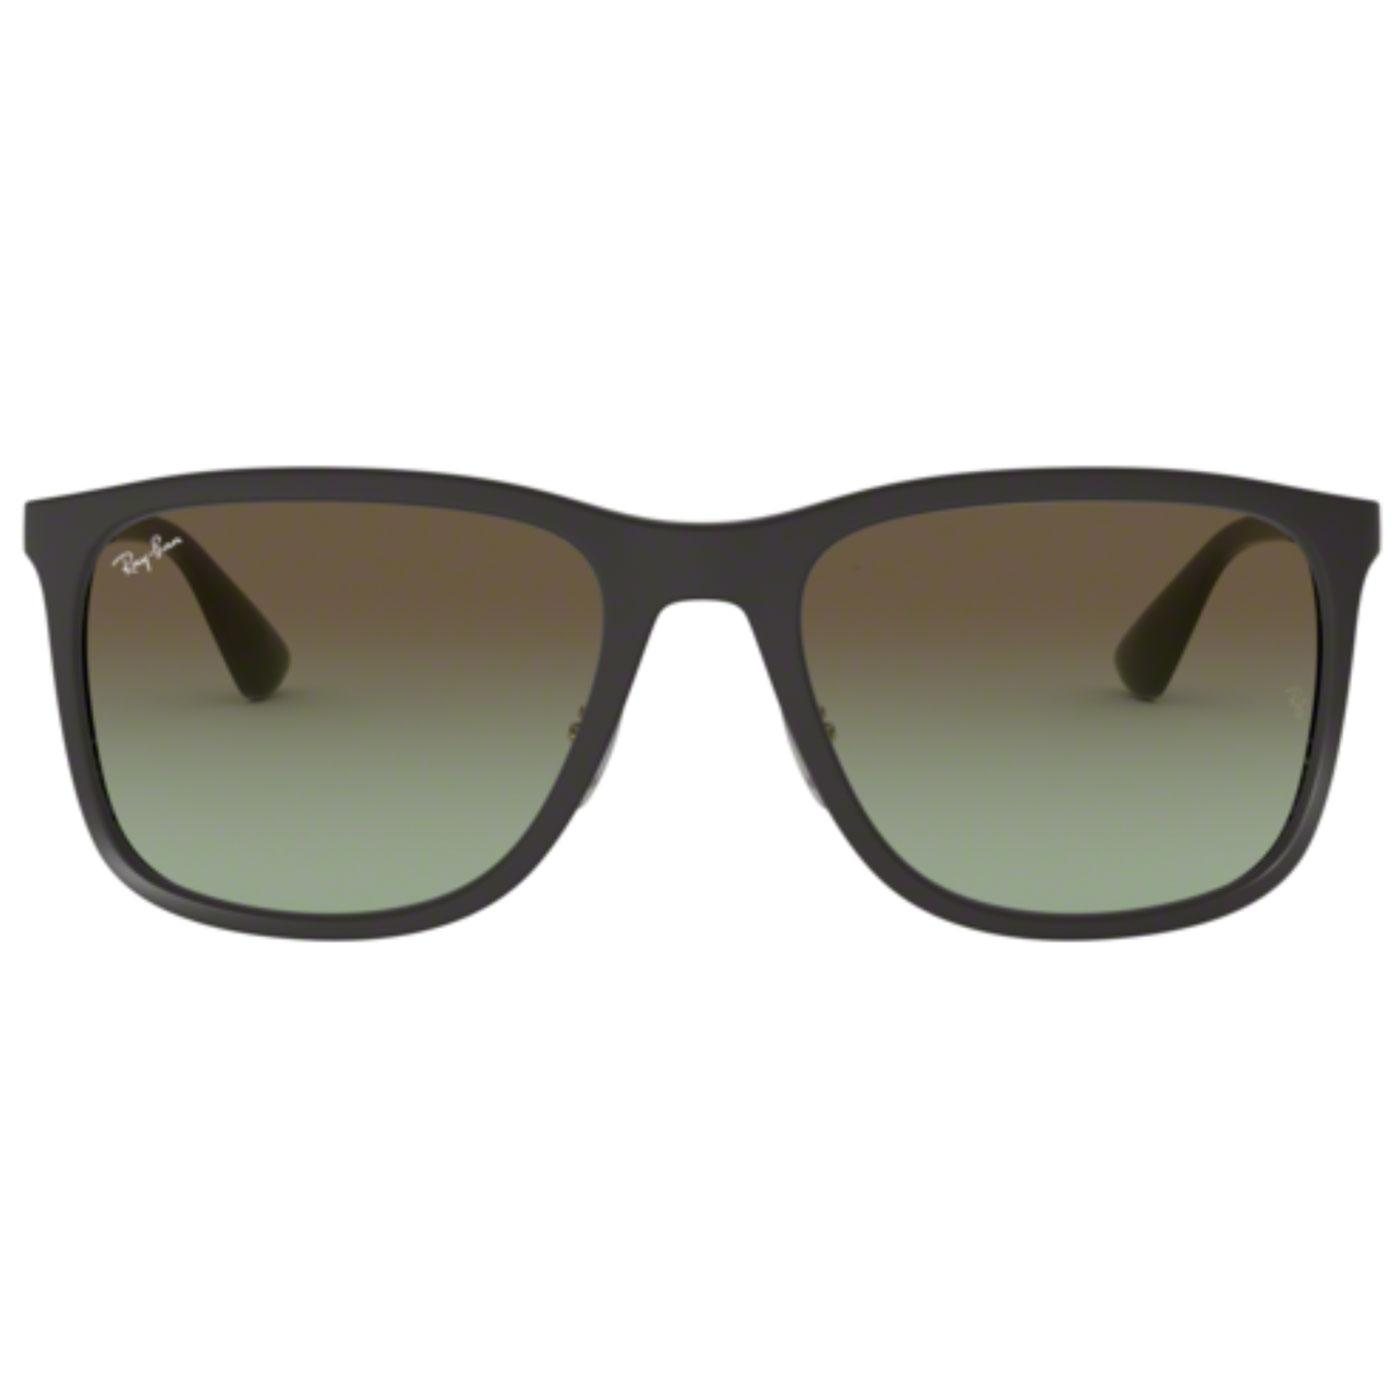 RAY-BAN Retro 50s Square Wayfarer sunglasses (MB)